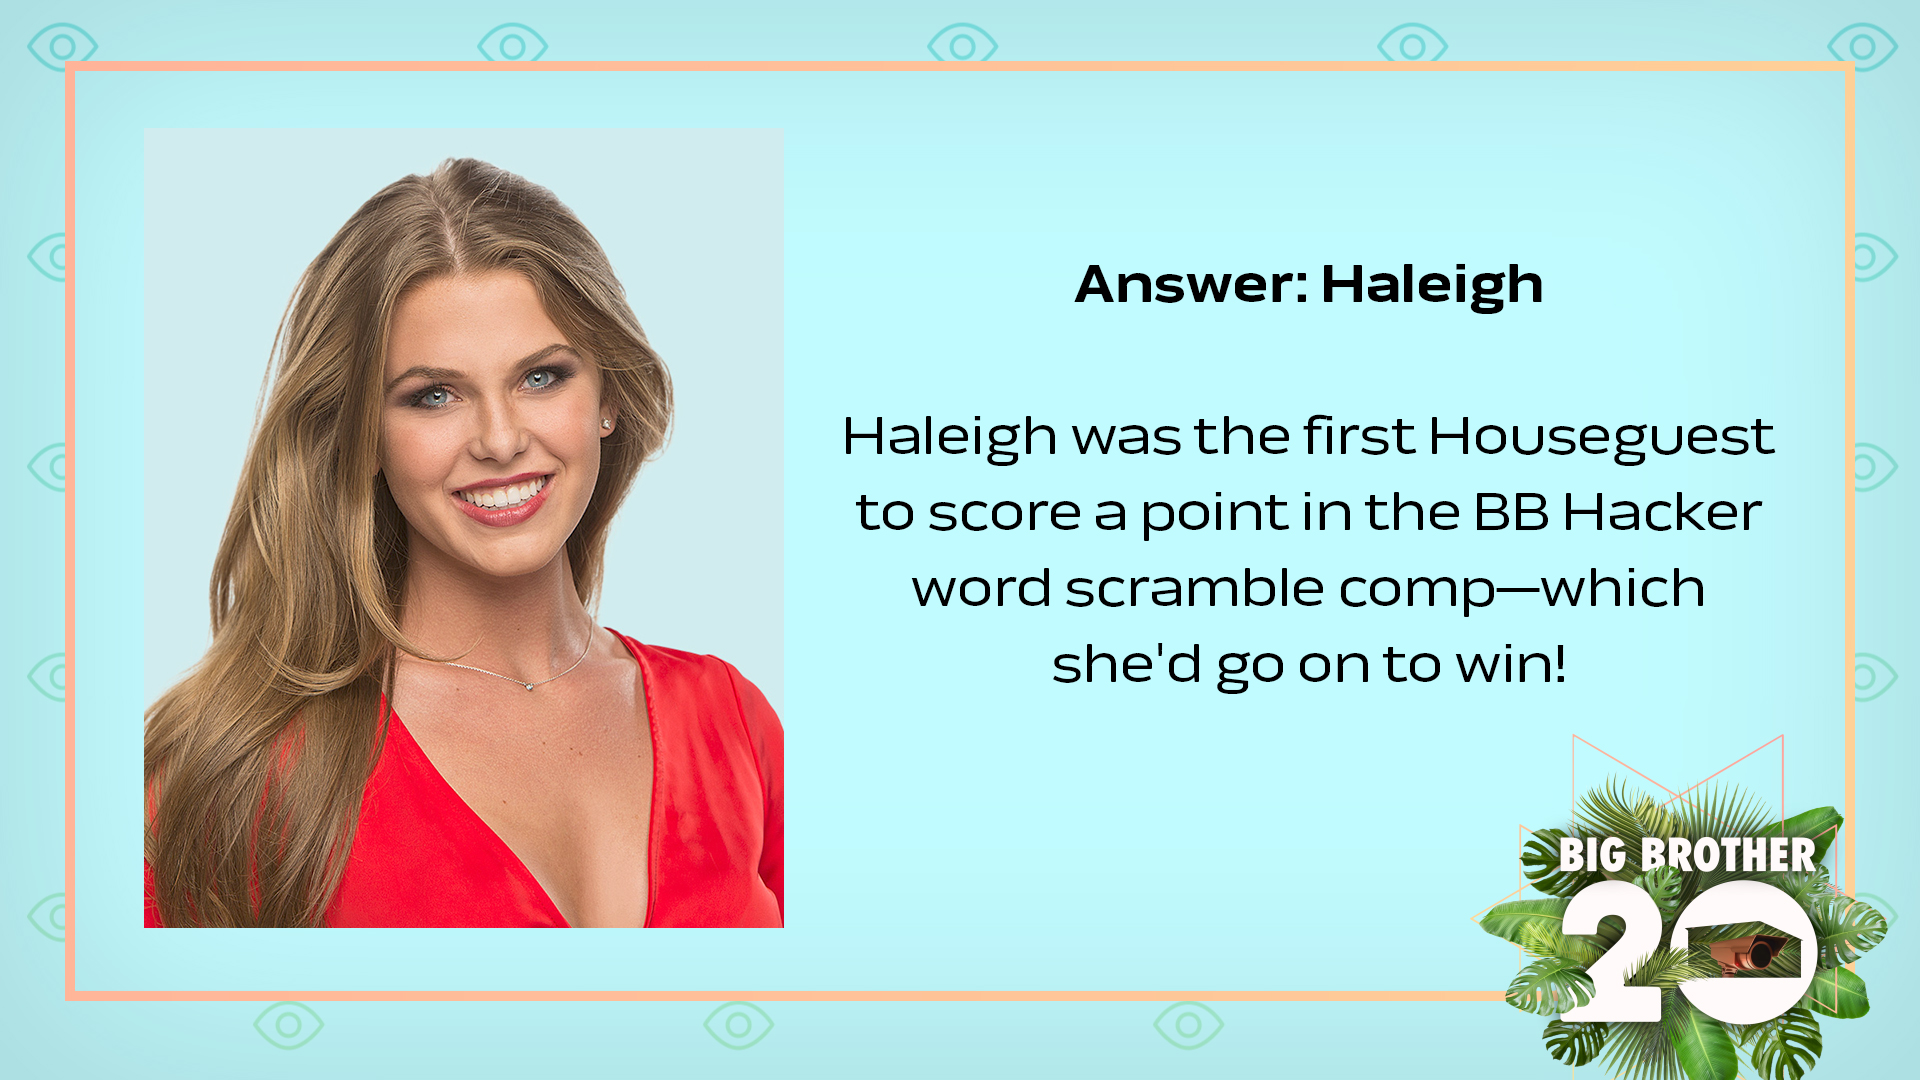 Answer: Haleigh